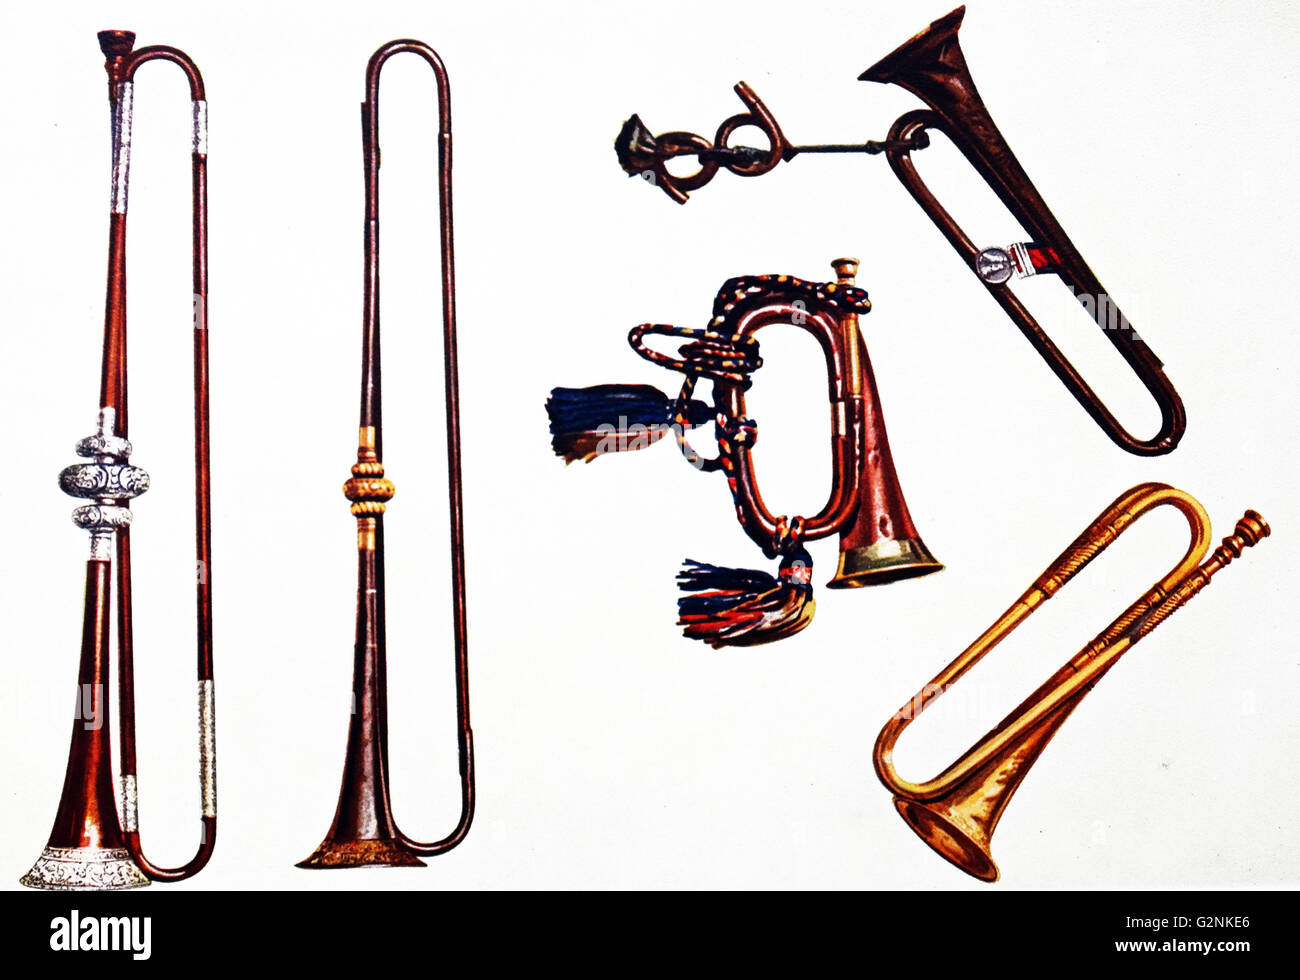 Cavalry Bugle, Cavalry Trumpet and Trumpets - Stock Image